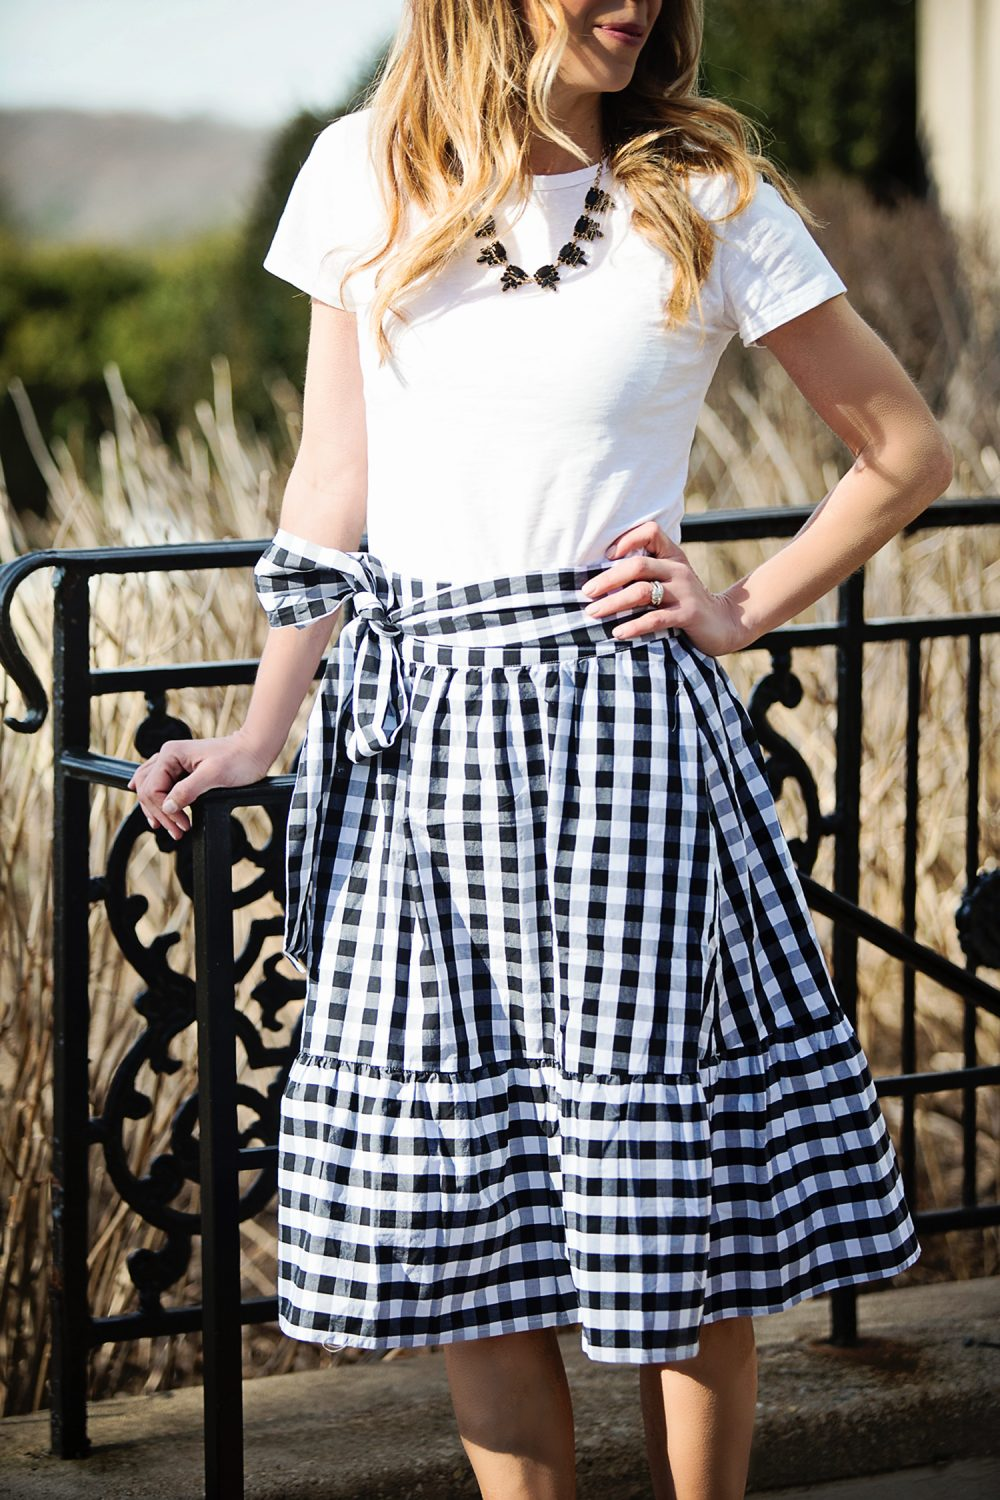 The Motherchic wearing gingham skirt from J.Crew Factory